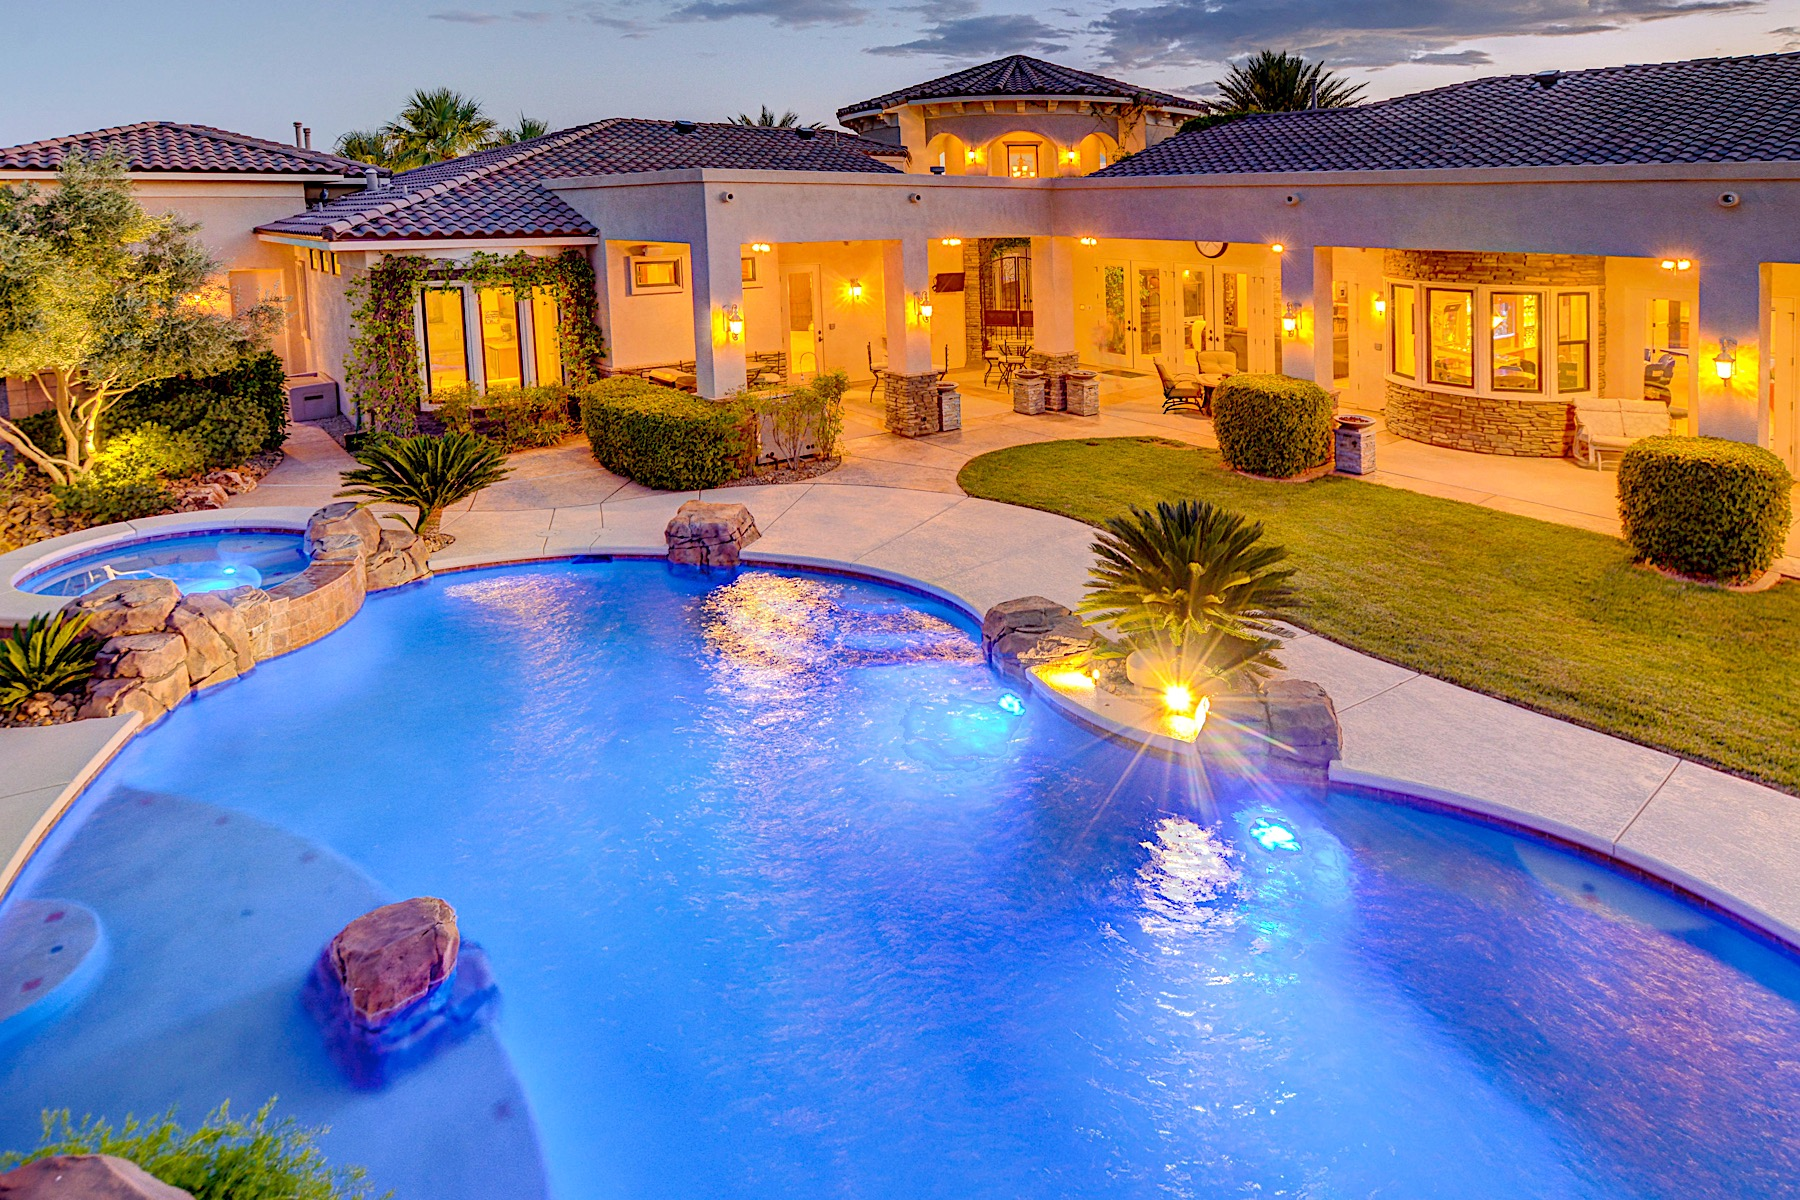 Single Family Homes for Sale at The Boulder Bluff Estate One-Story Custom on 2.5 Acres 1510 Mendota Drive Boulder City, Nevada 89005 United States